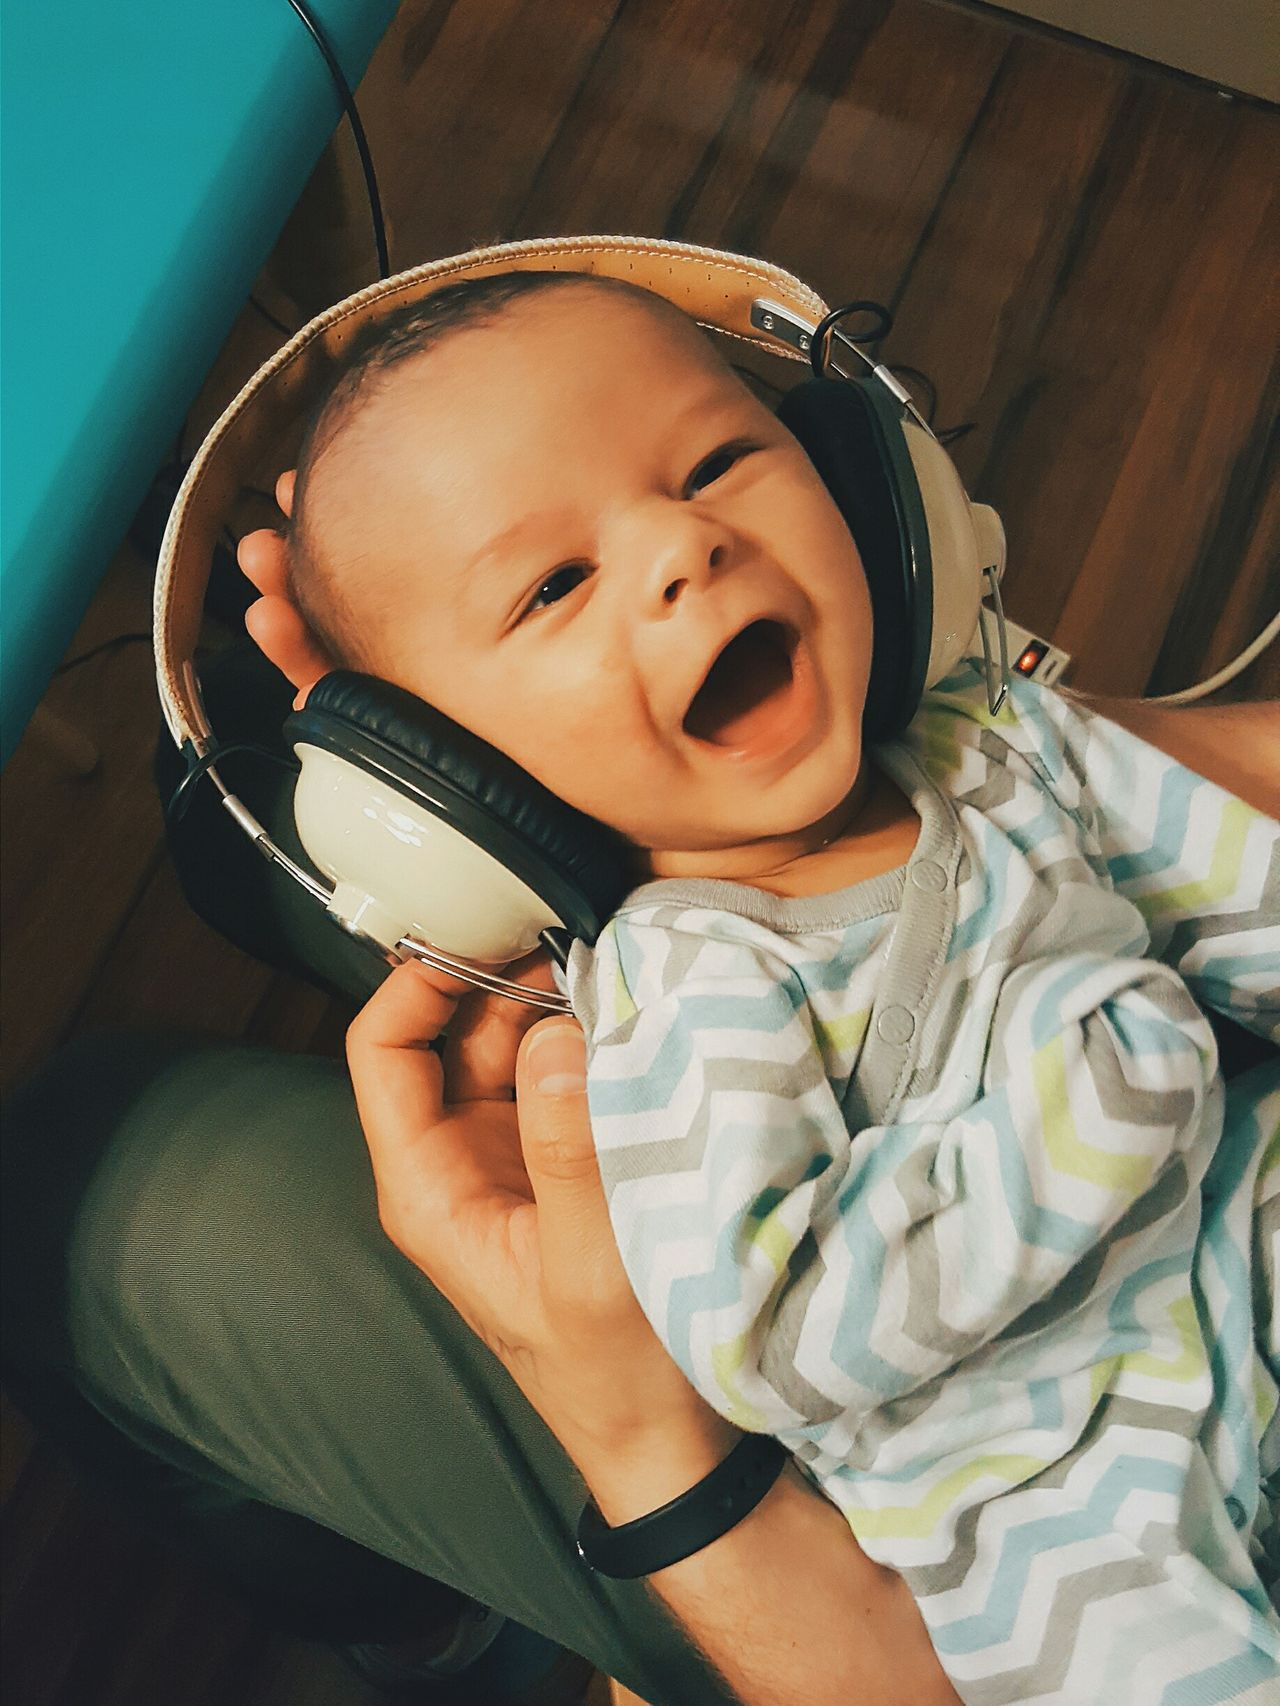 Fatherhood Moments means he might share dad's music tastes. Eyeem Babies Baby Headphones Samsung Galaxy Note 5 New Life TakeoverMusic